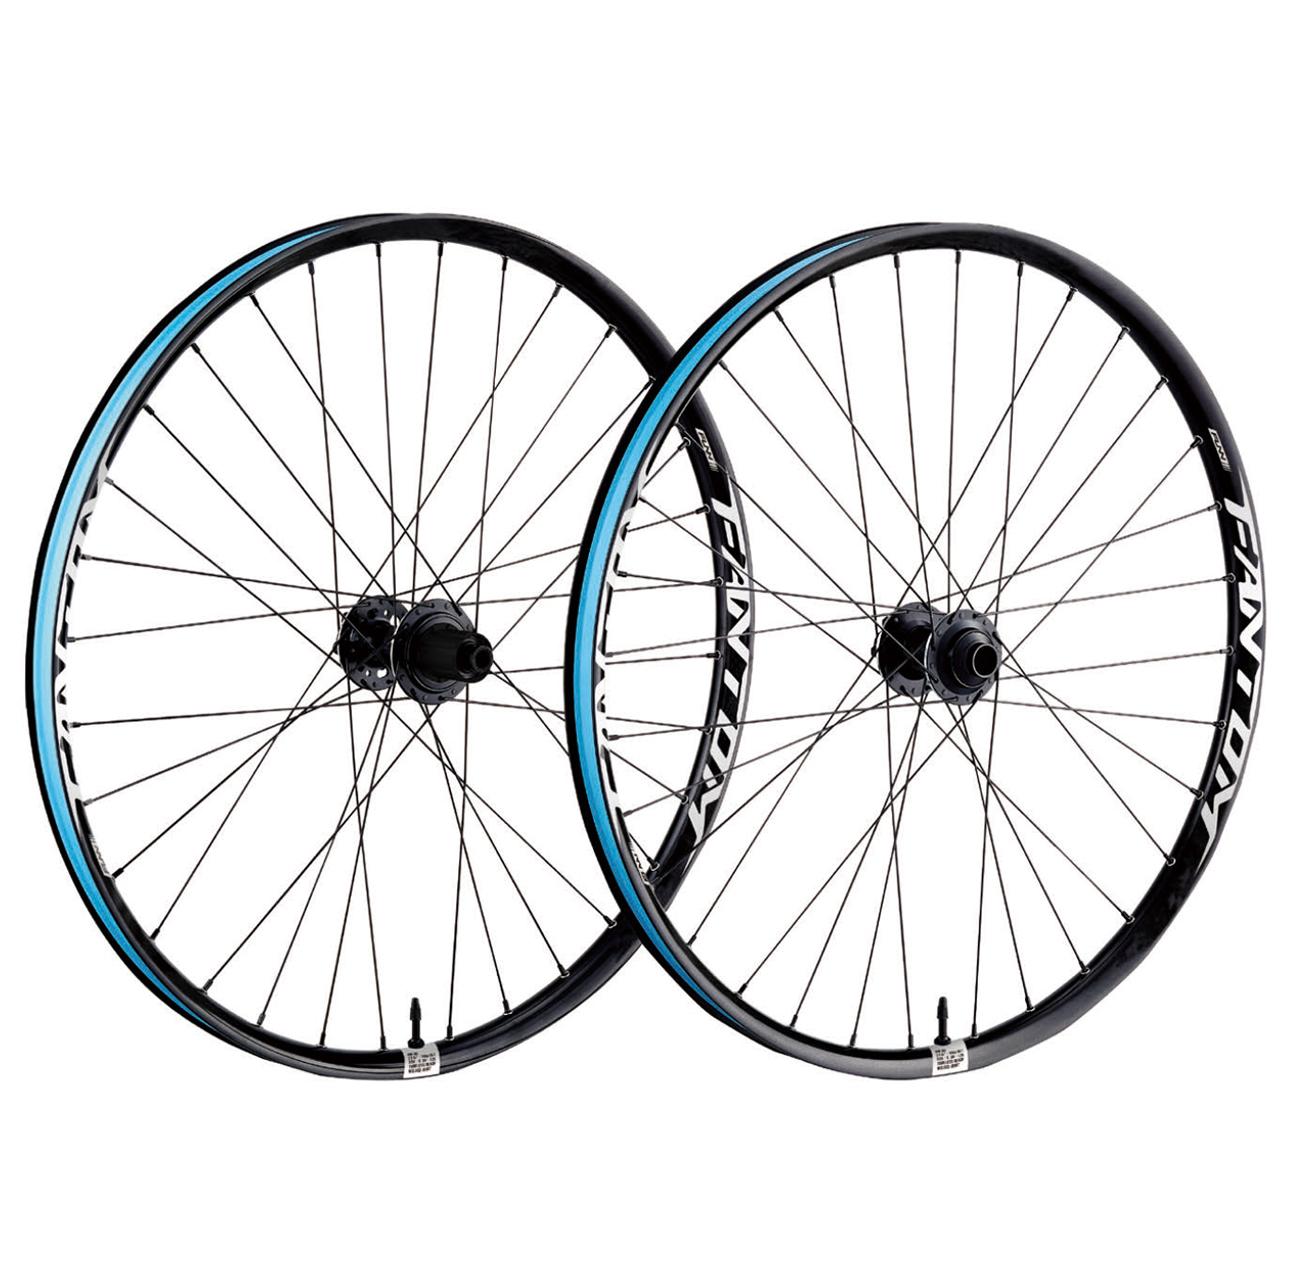 wheel-SET-new.jpg